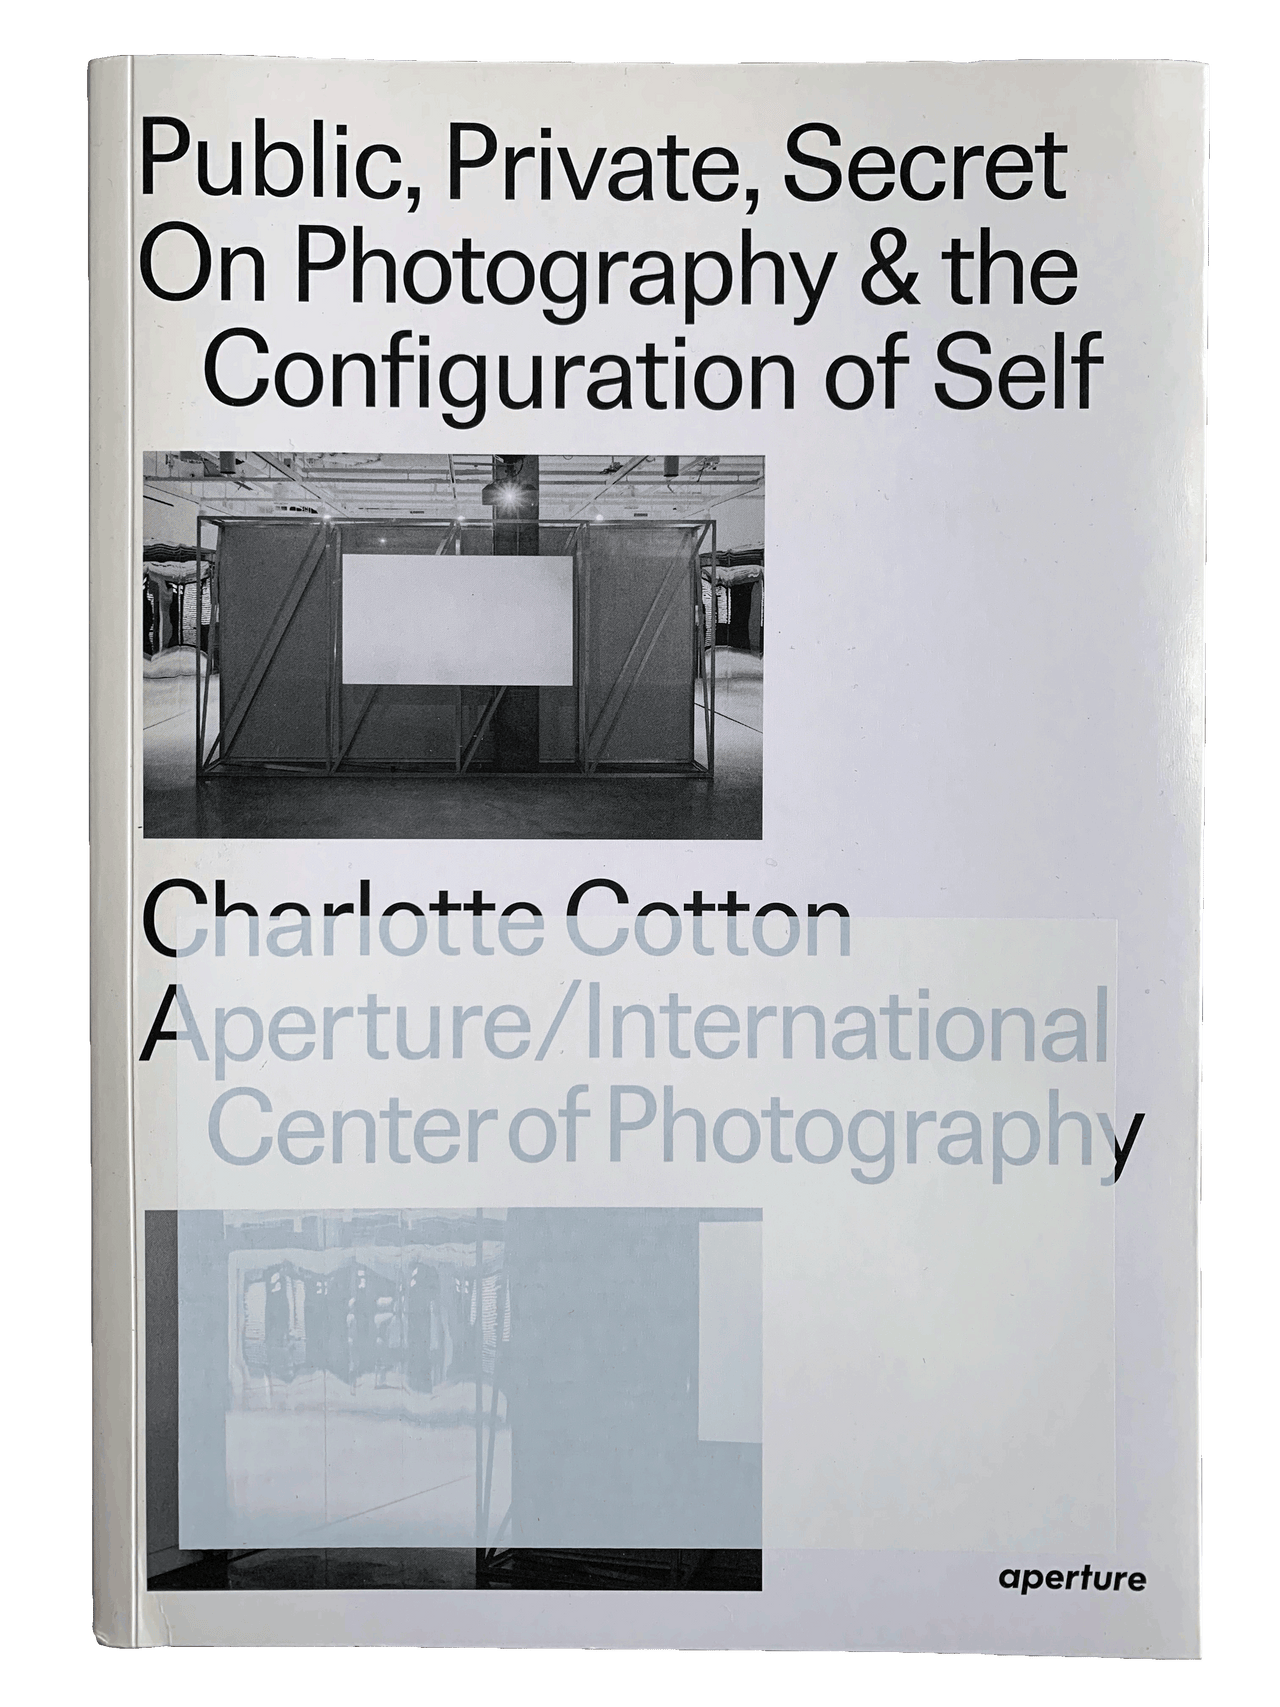 Public, Private, Secret: On Photography and the Configuration of Self